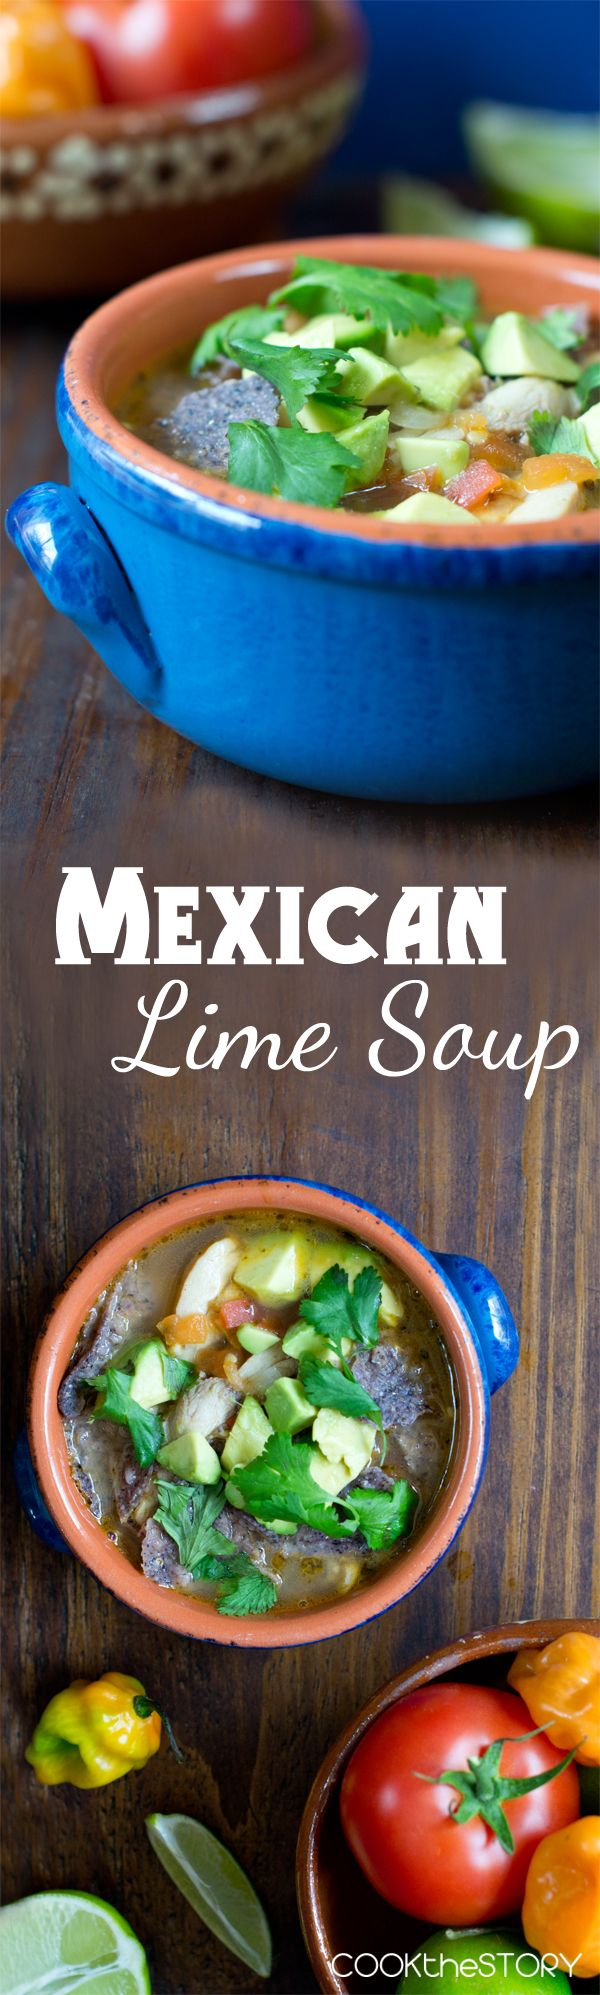 Sopa de Lima (Mexican Lime Soup) - This flavorful soup comes together in just 15 minutes, making it perfect for dinner tonight! From COOKtheSTORY.com